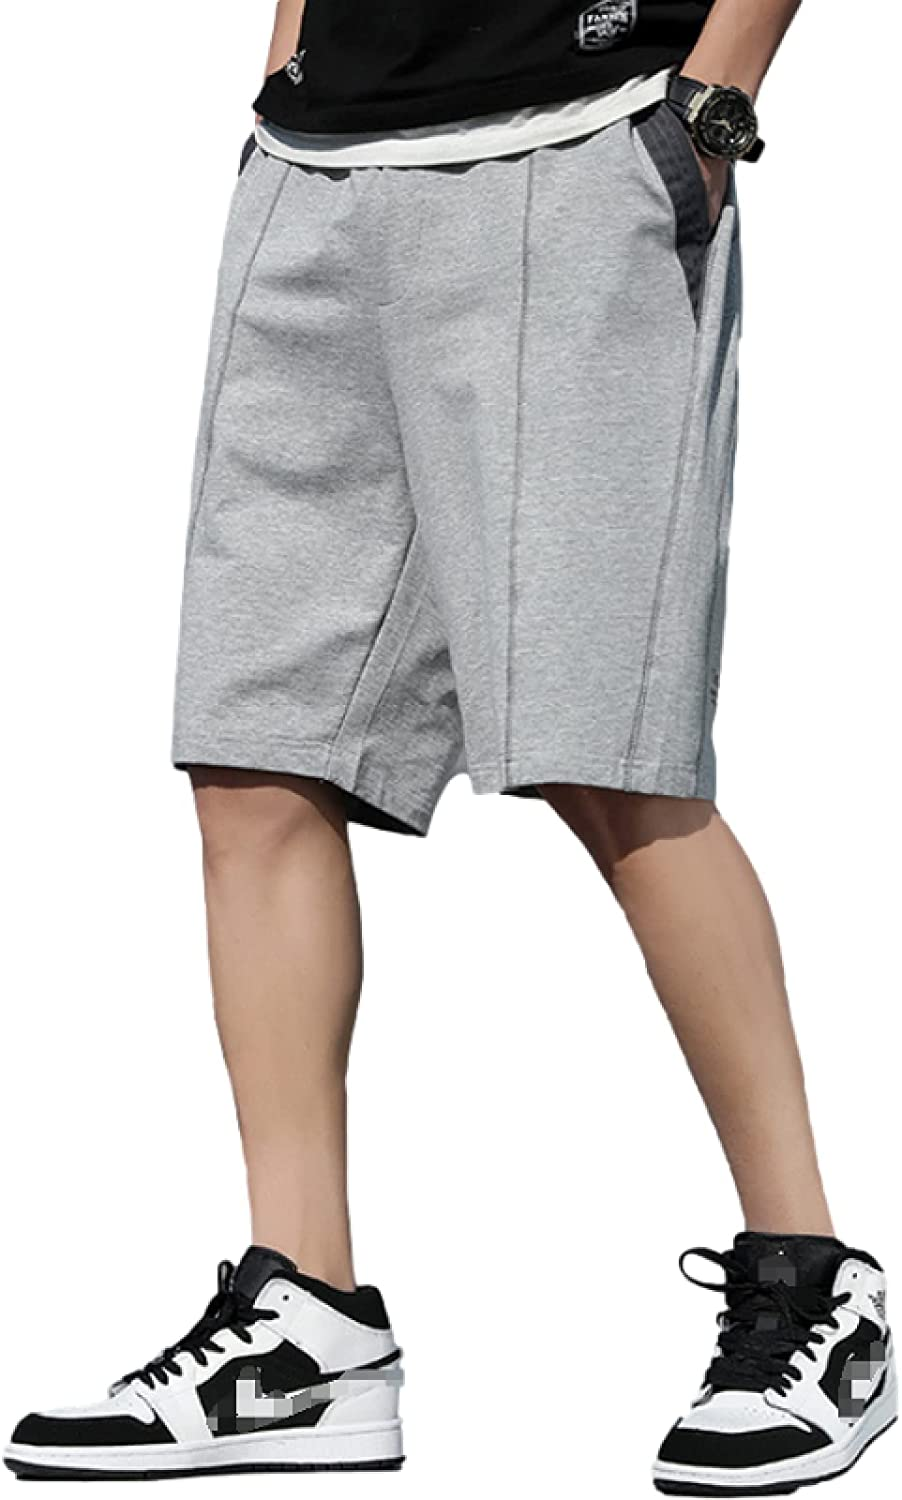 Men's Simple All-Match Shorts Summer Fashion Stitching Casual Comfortable